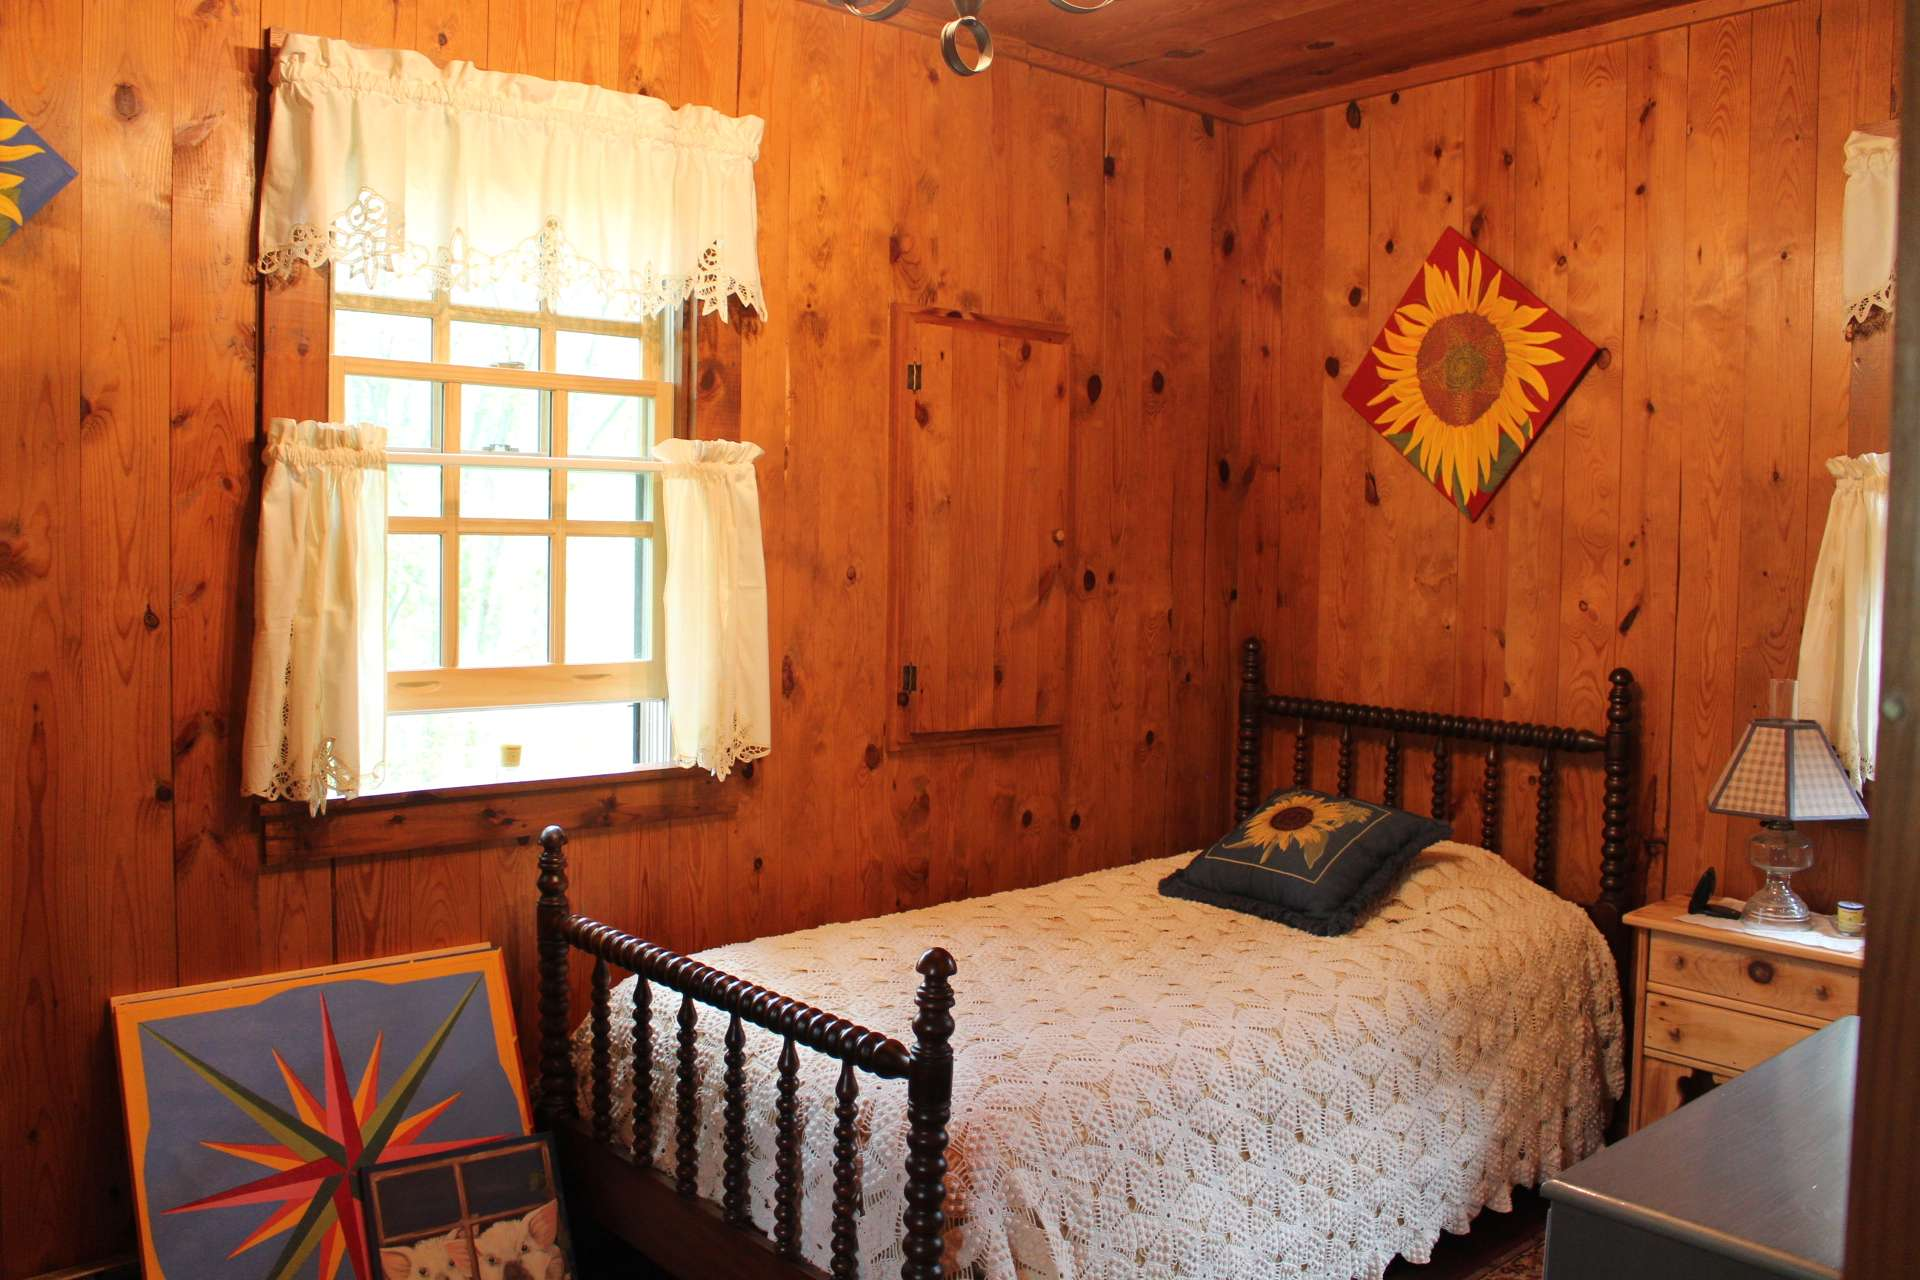 A guest bedroom and full bath complete the main level of the cabin.